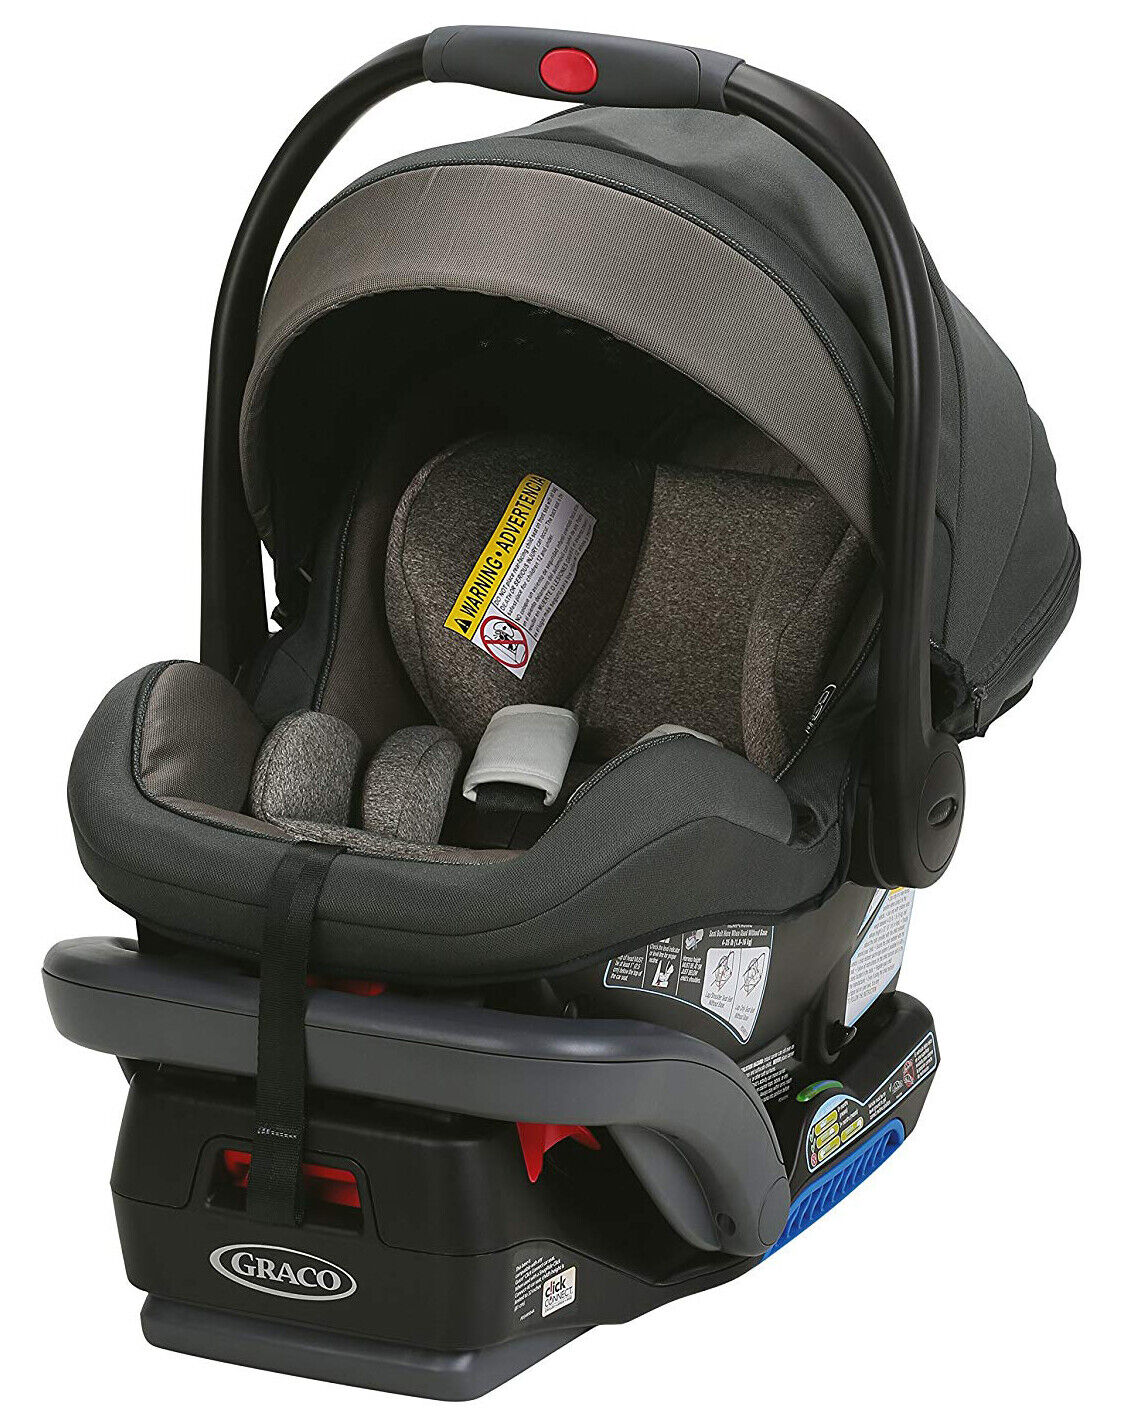 Graco SnugRide SnugLock 35 Platinum XT Infant Car Seat, Brya